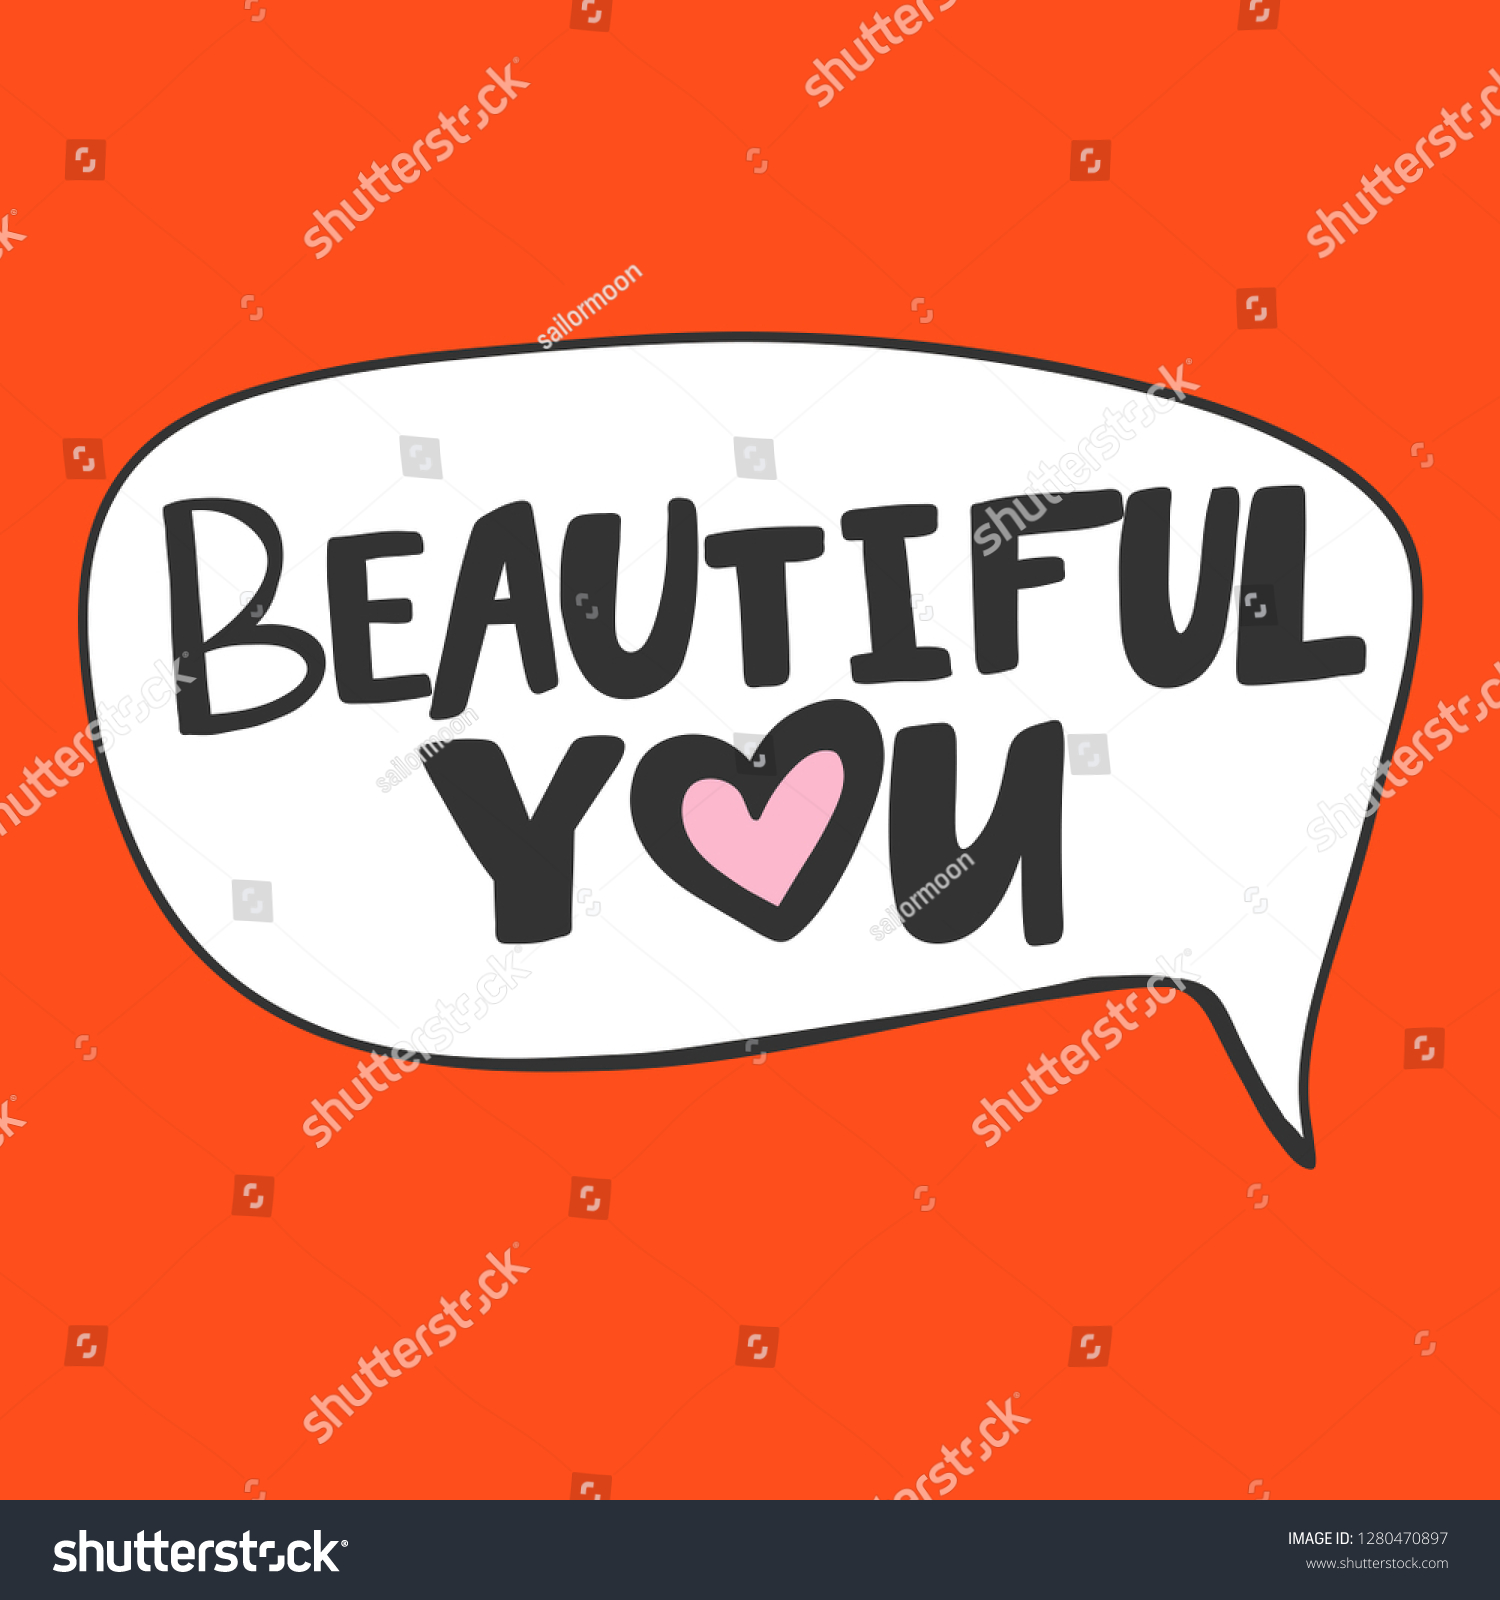 Beautiful you valentines day sticker for social media content vector hand drawn illustration design